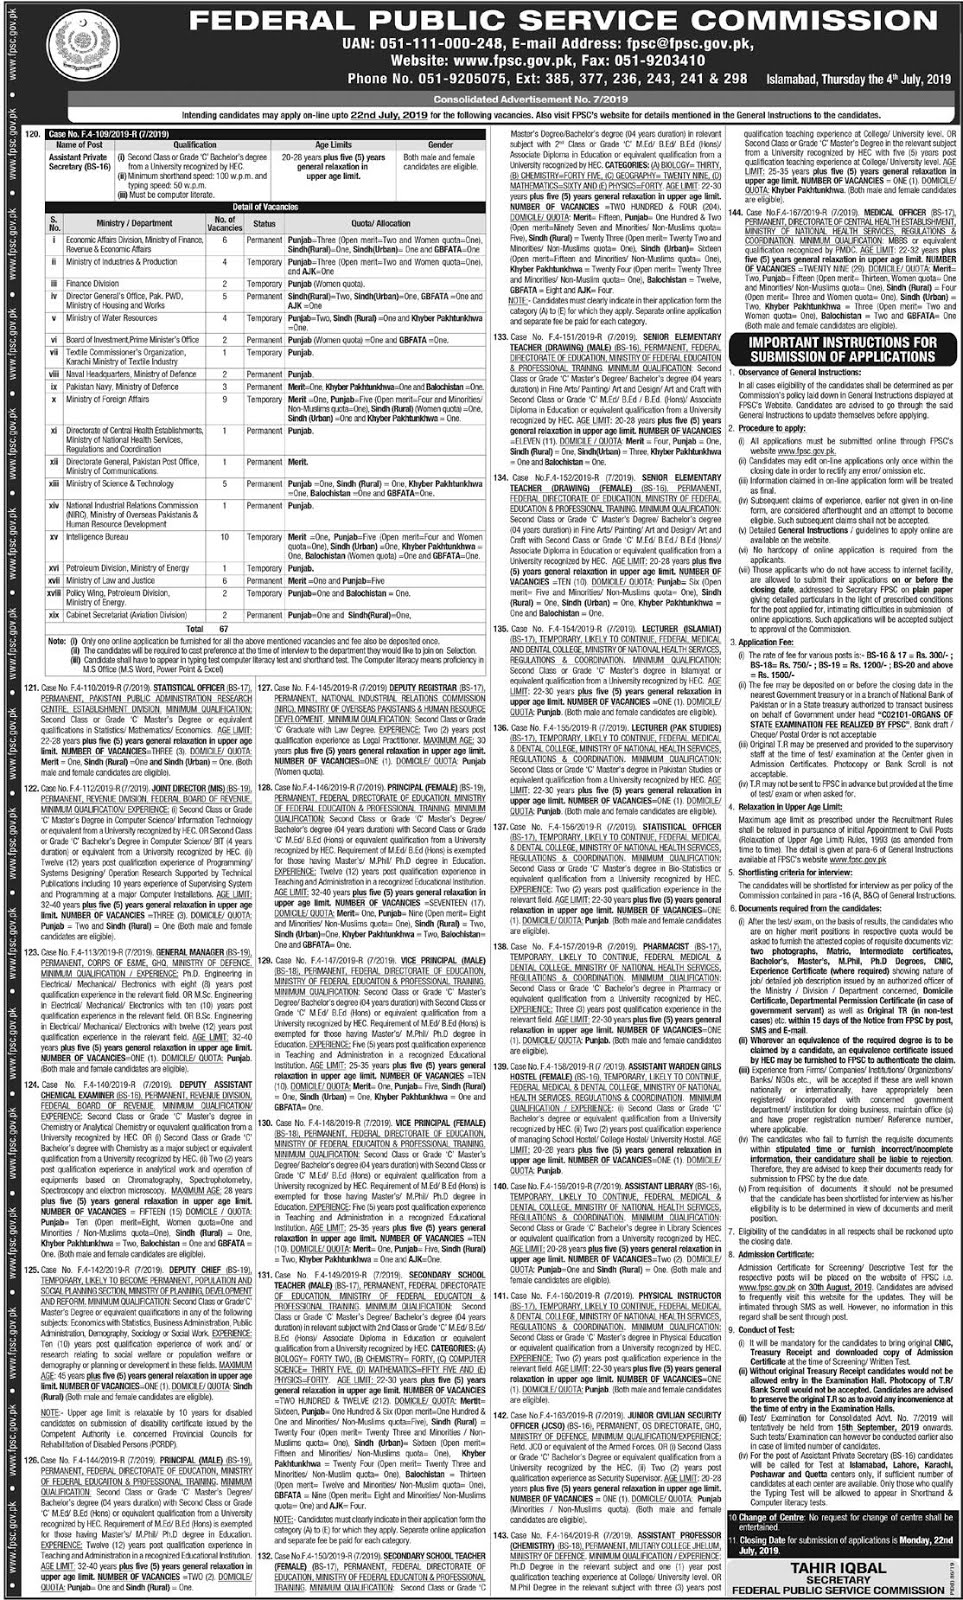 fpsc jobs,fpsc jobs 2019,fpsc,jobs in pakistan,fpsc jobs 2018,fpsc latest jobs,pakistan jobs,jobs,fia latest jobs,latest fpsc jobs 2019,fpsc teaching jobs 2019,fia jobs,nts jobs,ppsc jobs,govt jobs,latest jobs,fia jobs 2019,fbr jobs 2019,teaching jobs,jobs in fpsc,fia new jobs 2019,government jobs,fpsc new jobs,fia fpsc jobs,fpsc fia jobs,pakistan jobs 2019,nts educators jobs